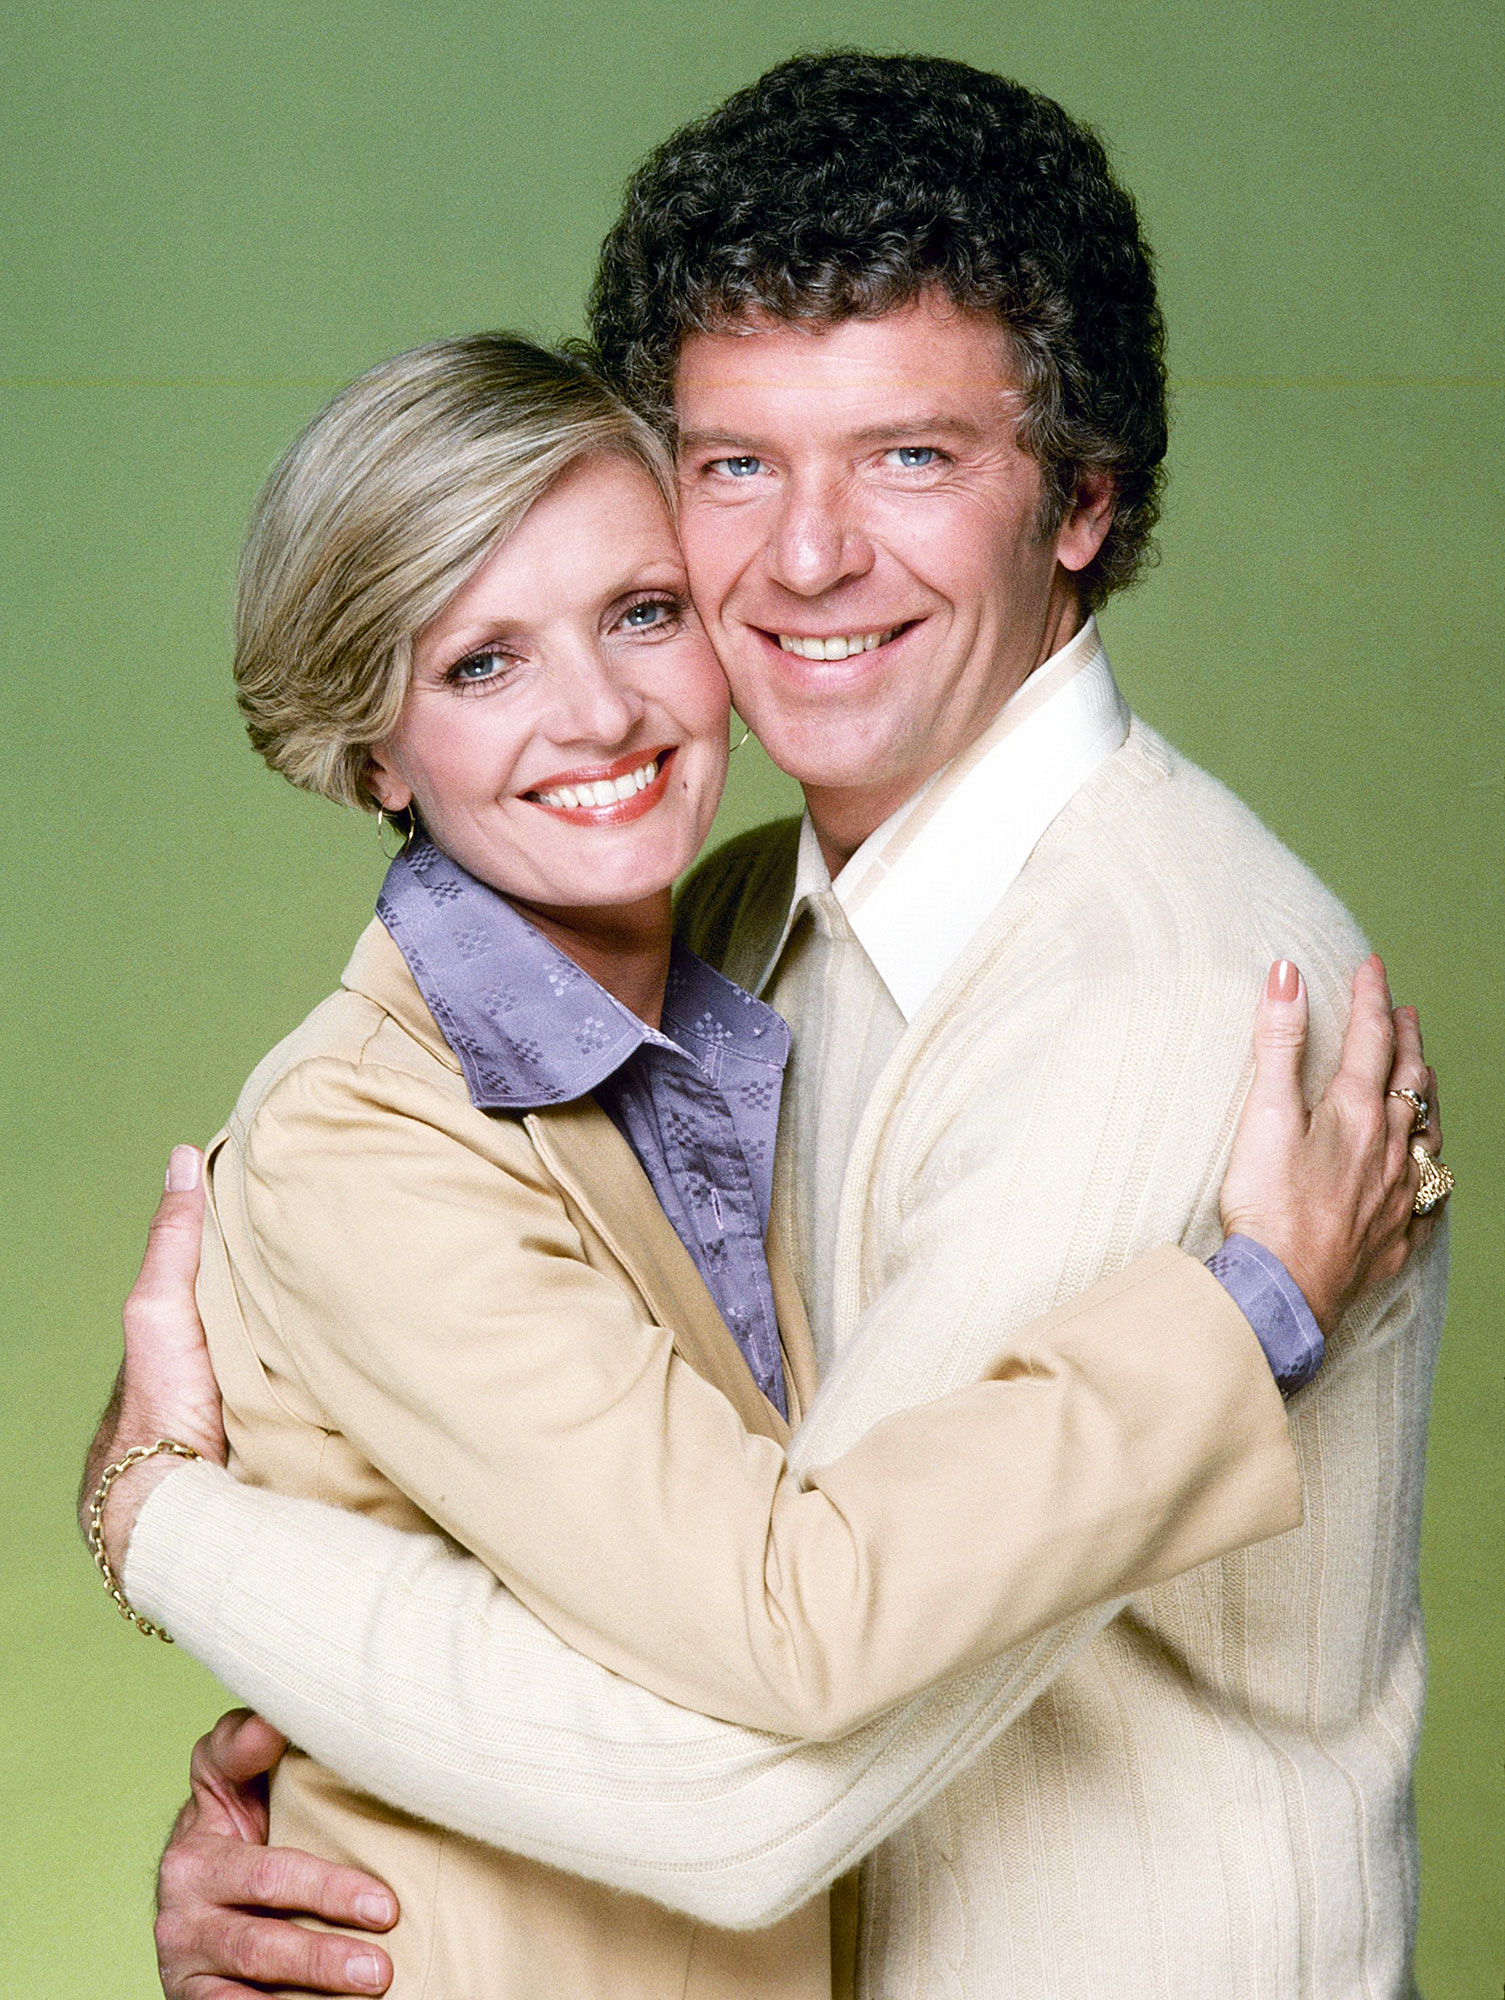 Best TV Couples The Brady Bunch FLORENCE HENDERSON ROBERT REED - Show: The Brady Bunch Actors: Florence Henderson and Robert Reed Network: ABC Seasons: 5